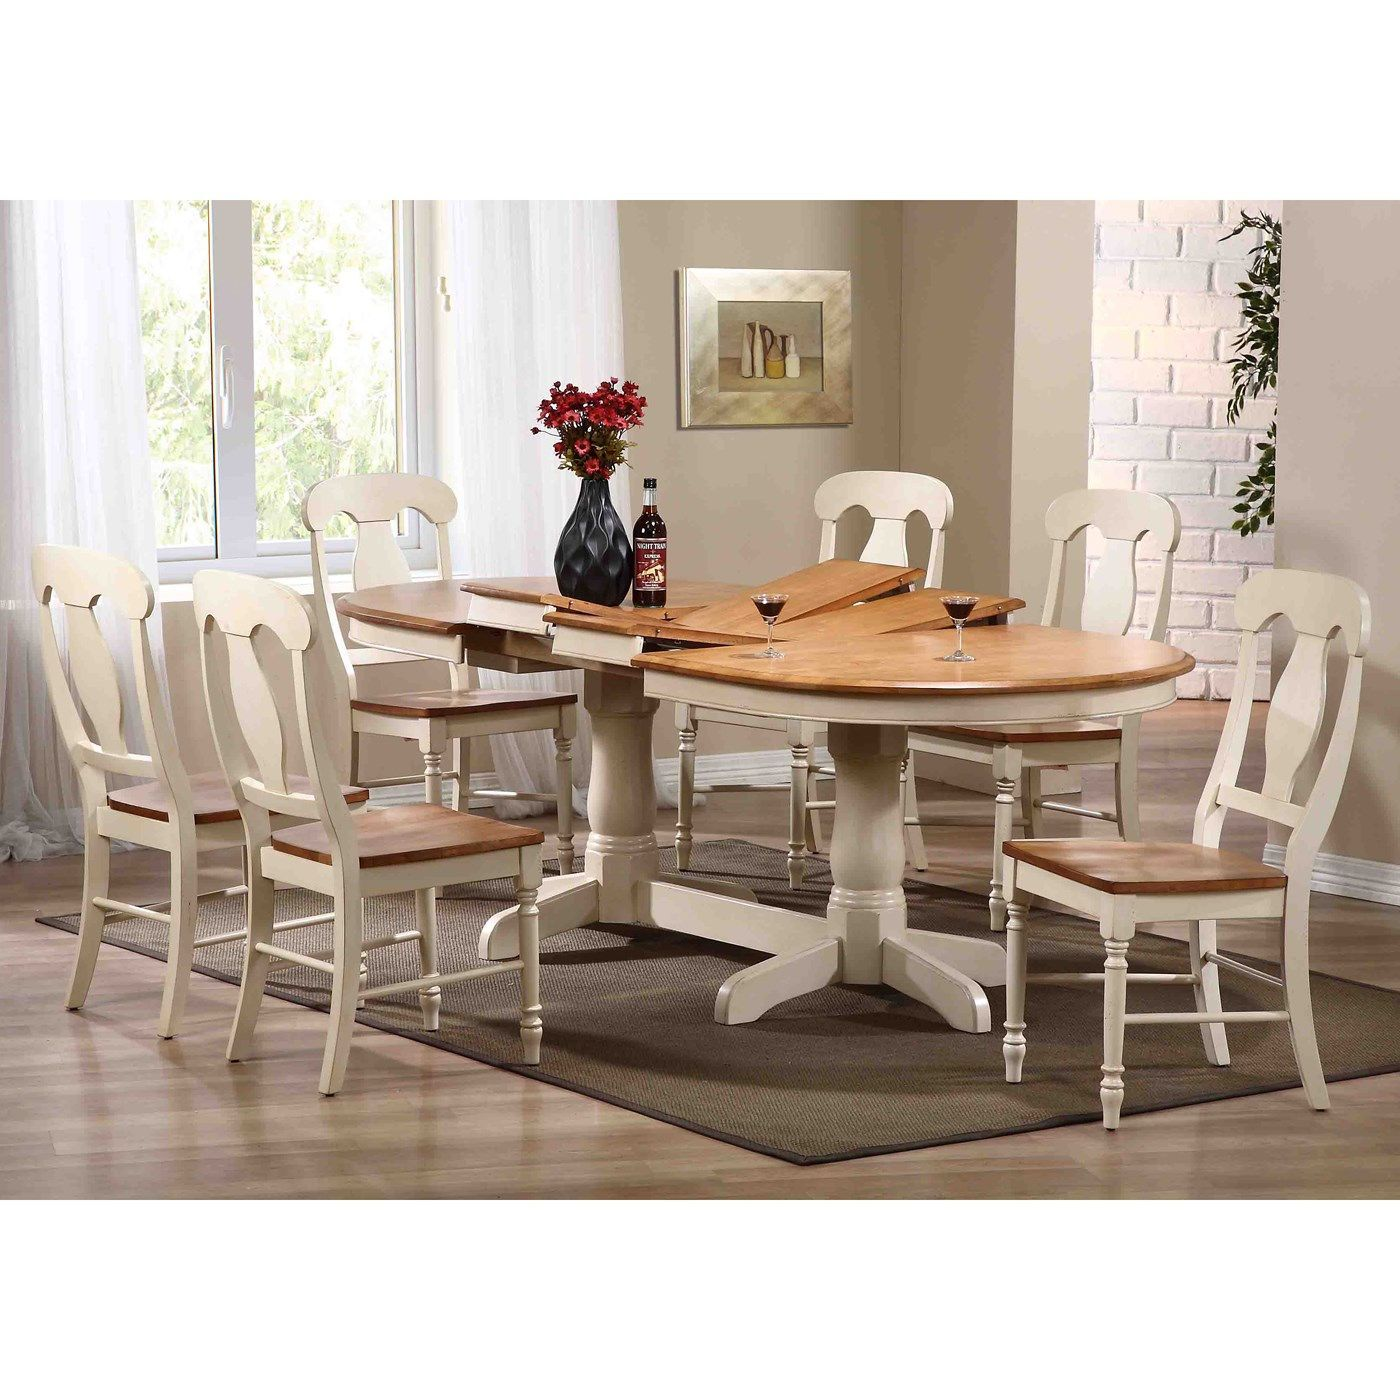 Iconic Furniture Ov 90 Oval Double Butterfly Leaf Table Oval